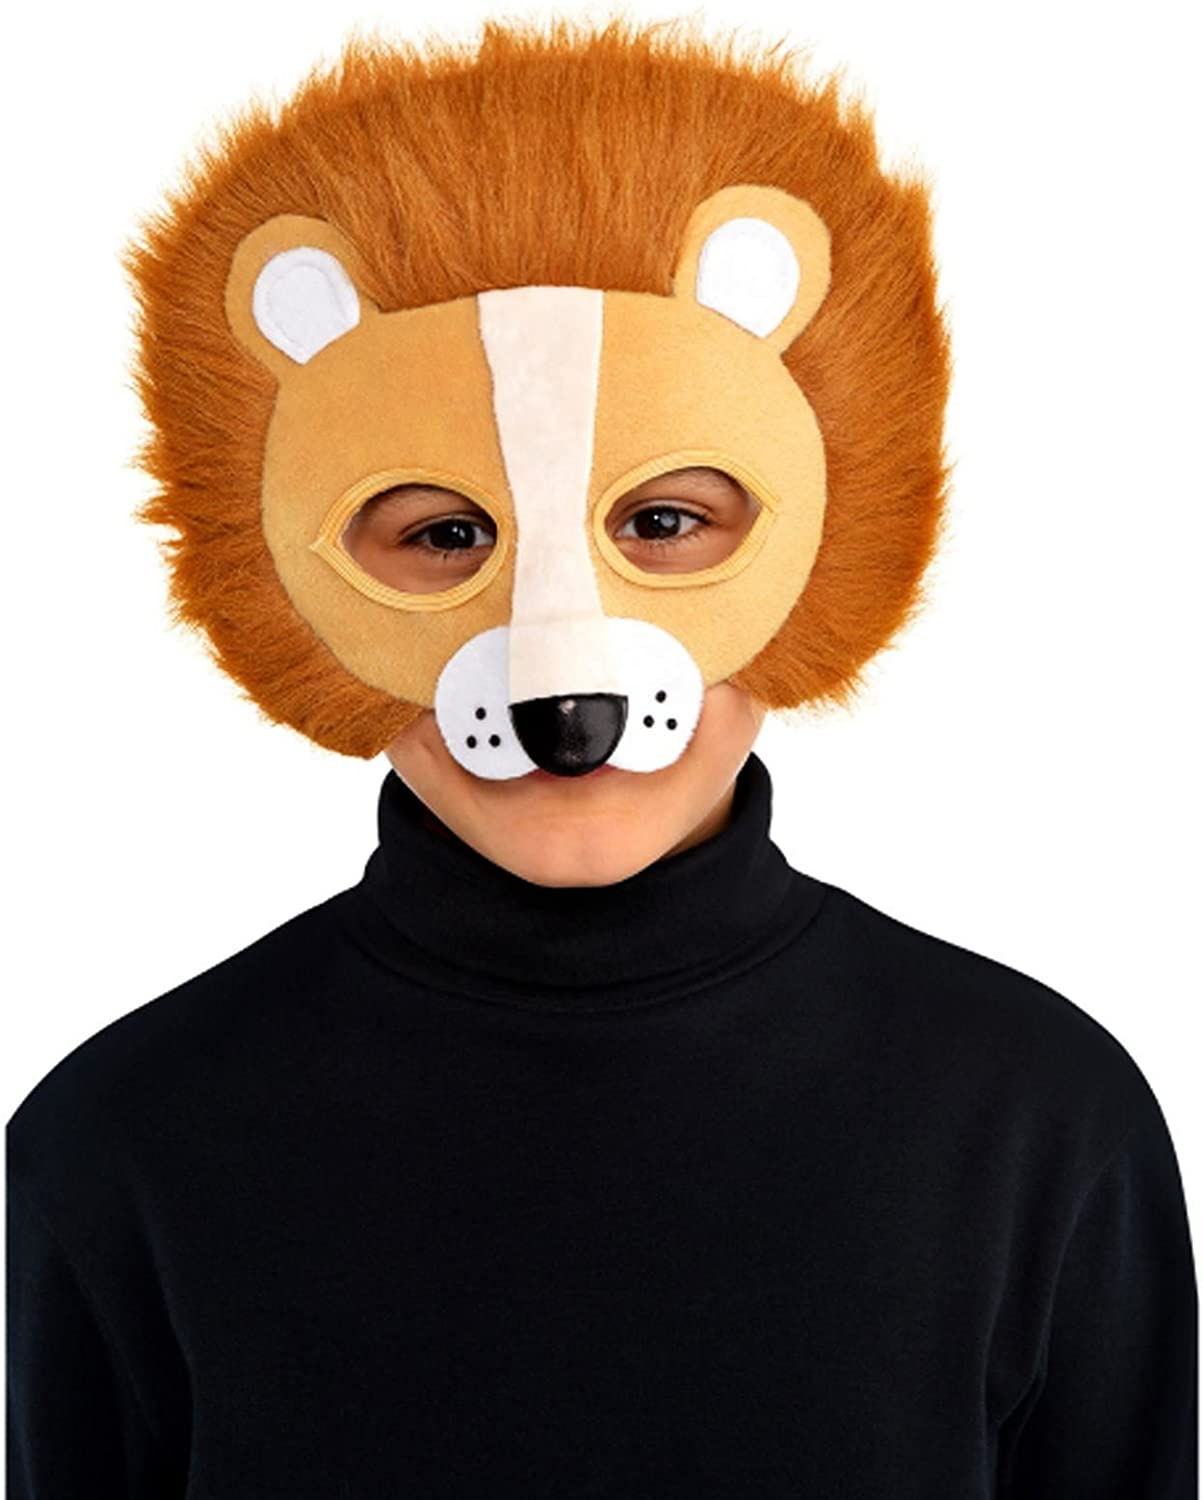 Fancy Dress Animal Costume Face Brown Children/'s Shaggy Dog Mask With Sound